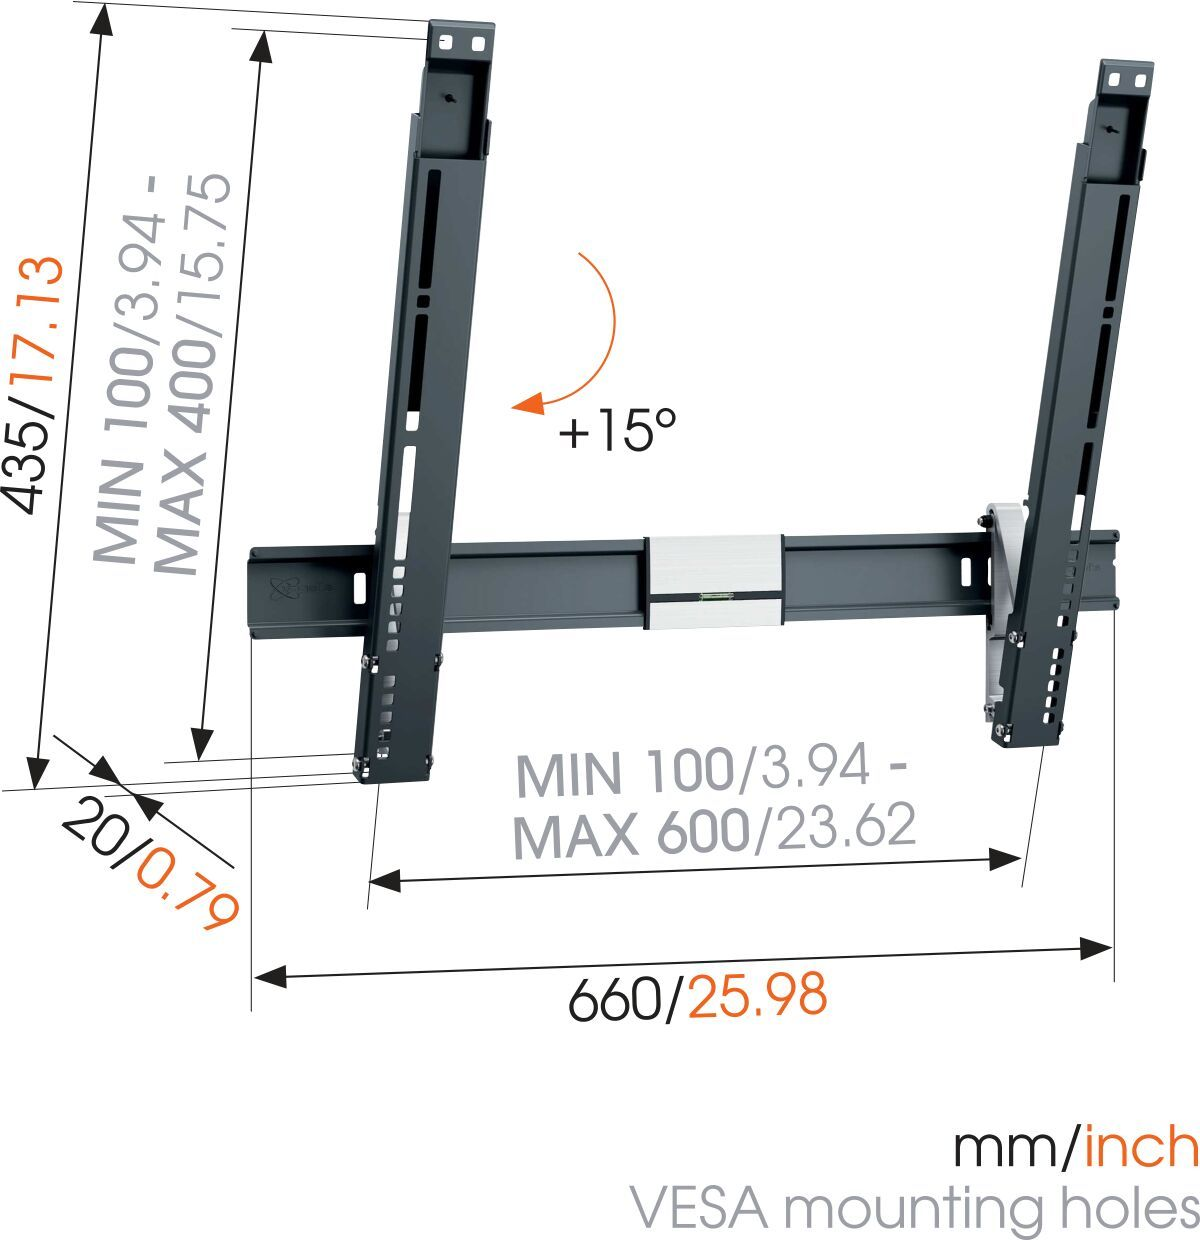 Vogel's THIN 515 ExtraThin Tilting TV Wall Mount - Suitable for 40 up to 65 inch TVs up to 25 kg - Tilt up to 15° - Dimensions